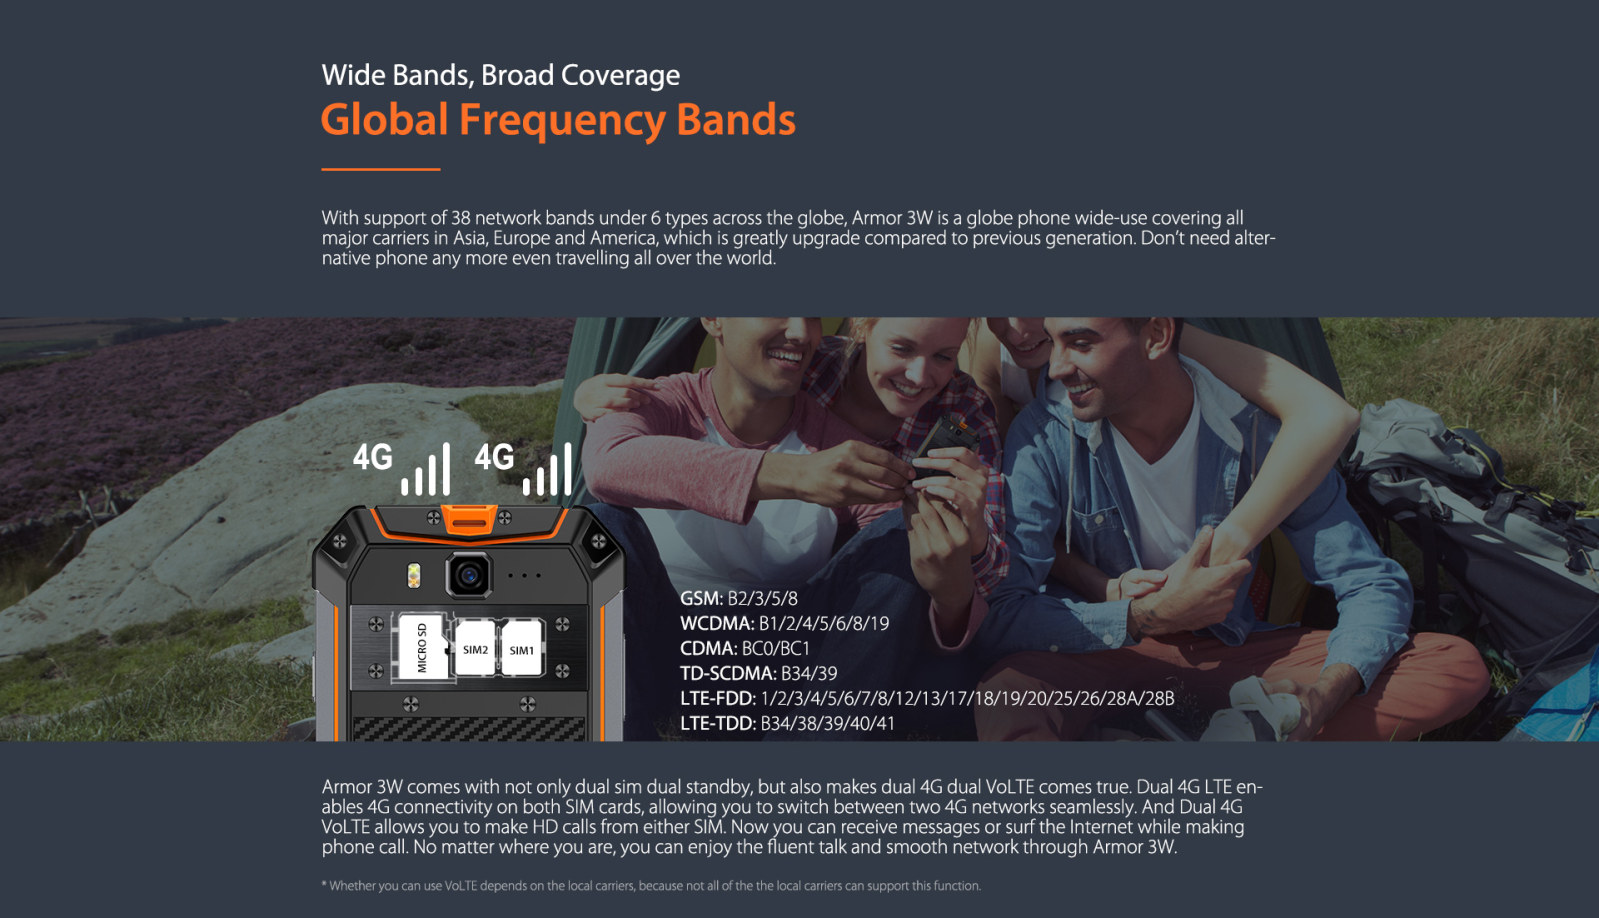 Globa frequency band support